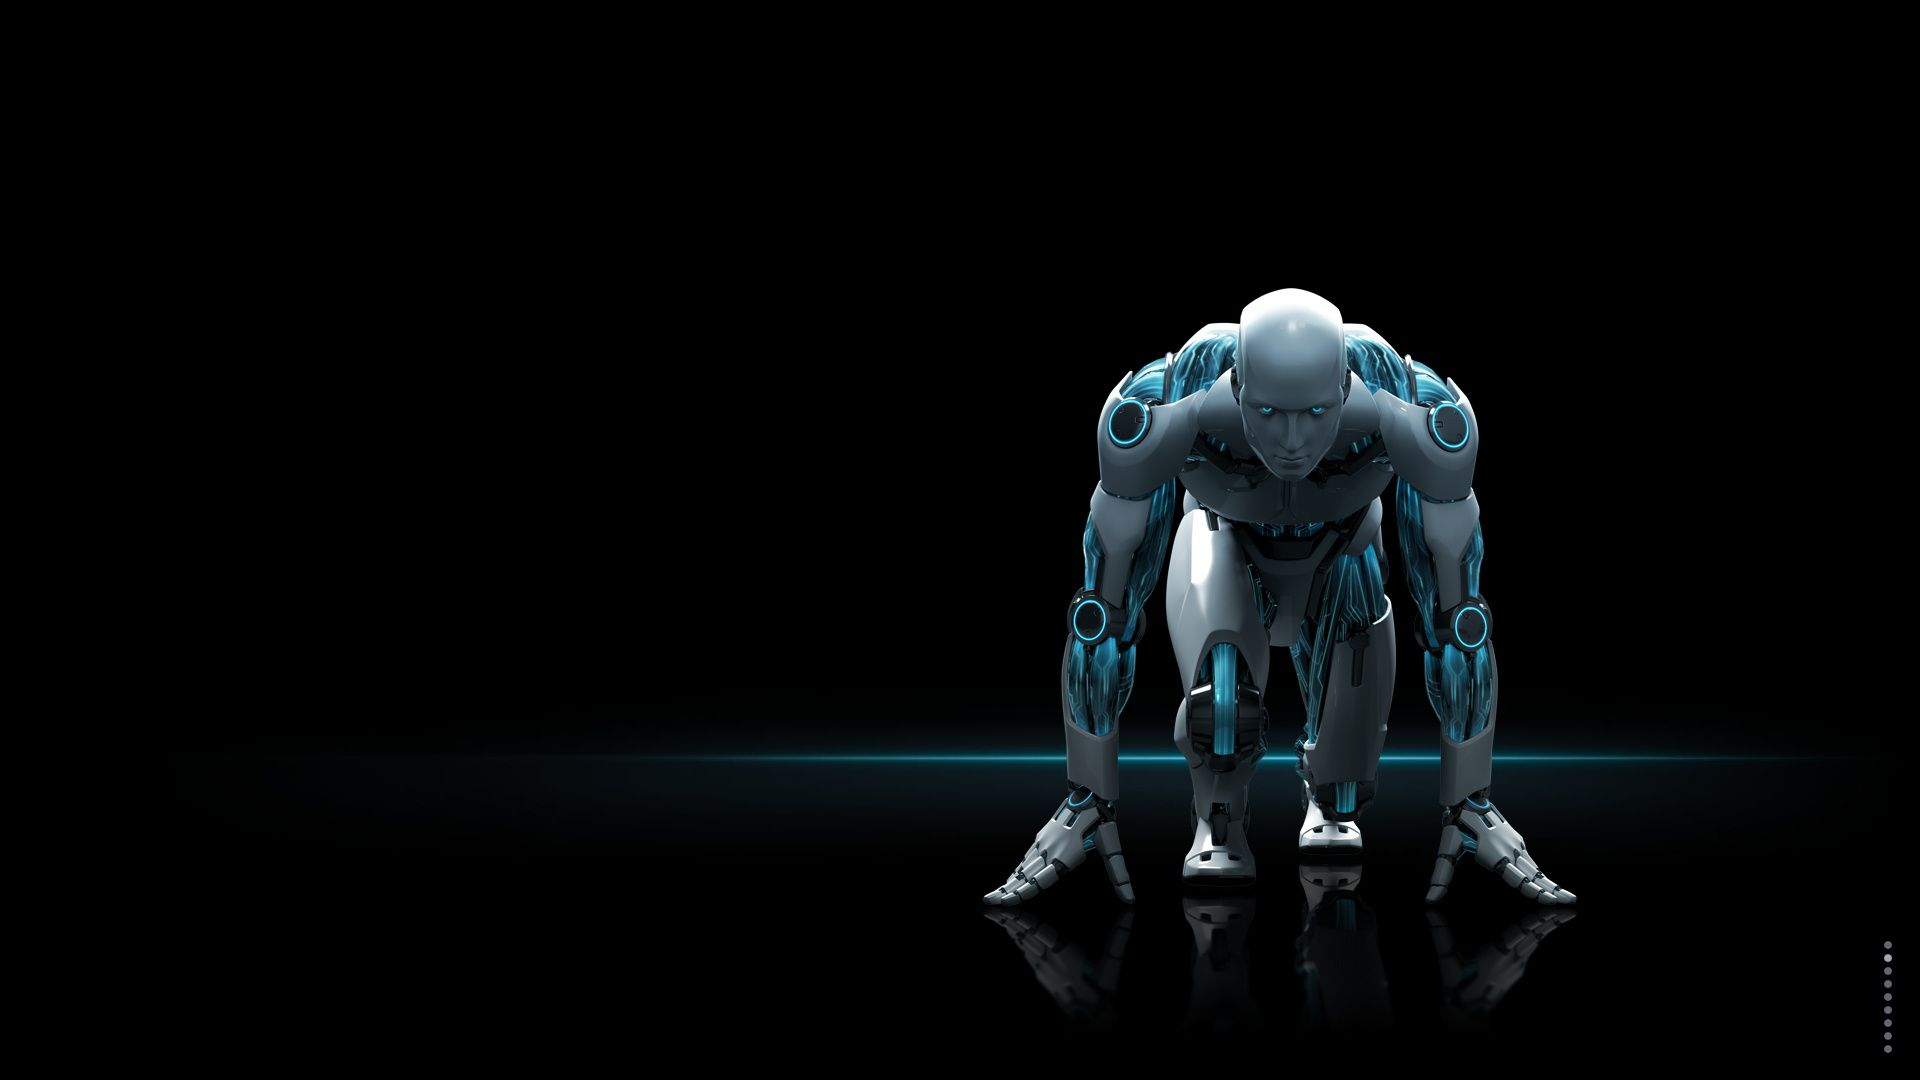 Cyborg Computer Wallpapers Desktop Backgrounds Id 1600